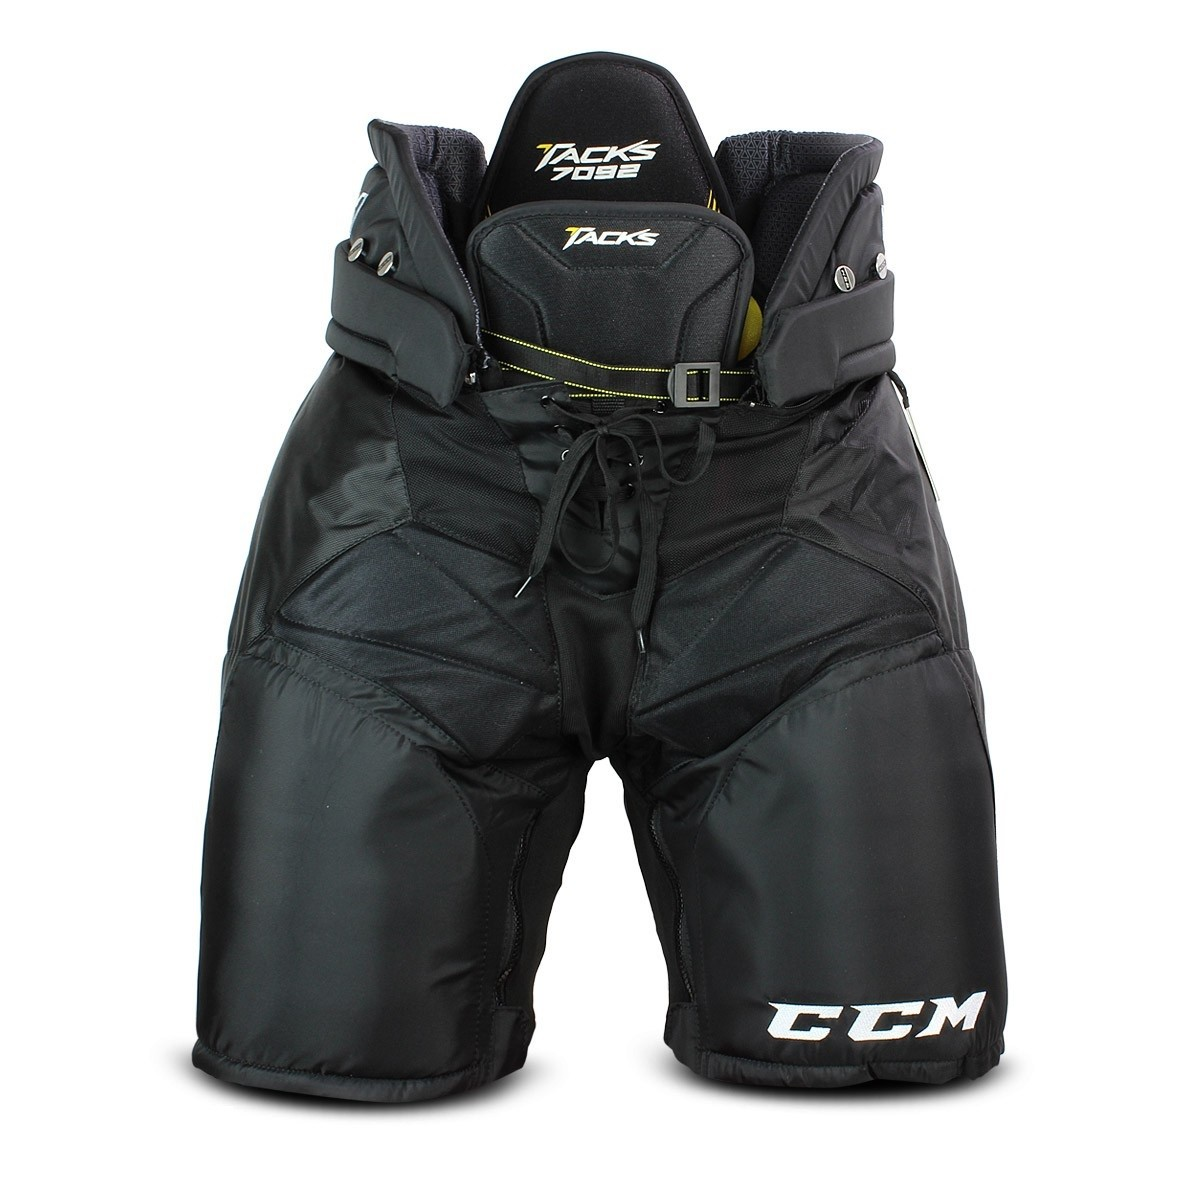 CCM Tacks 7092 Senior Ice Hockey Pants